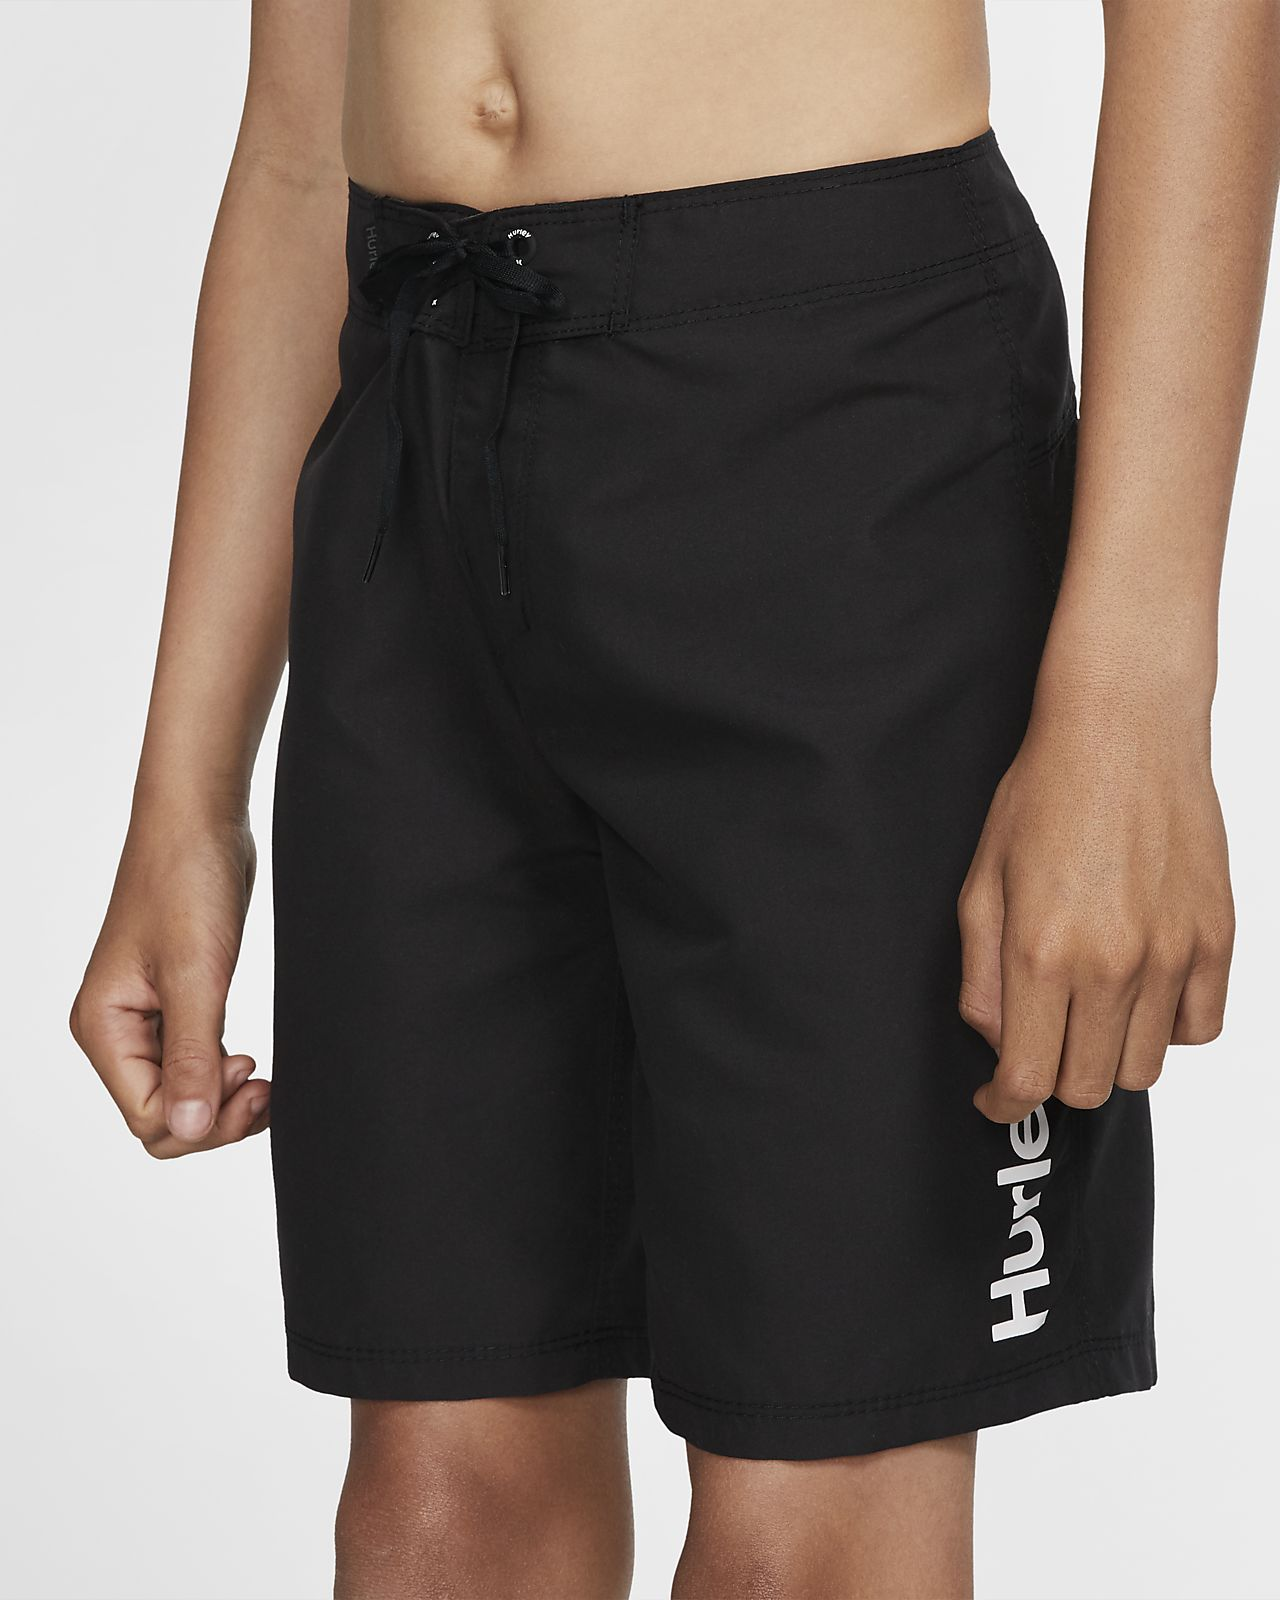 Hurley One And Only Supersuede Boys' Board Shorts